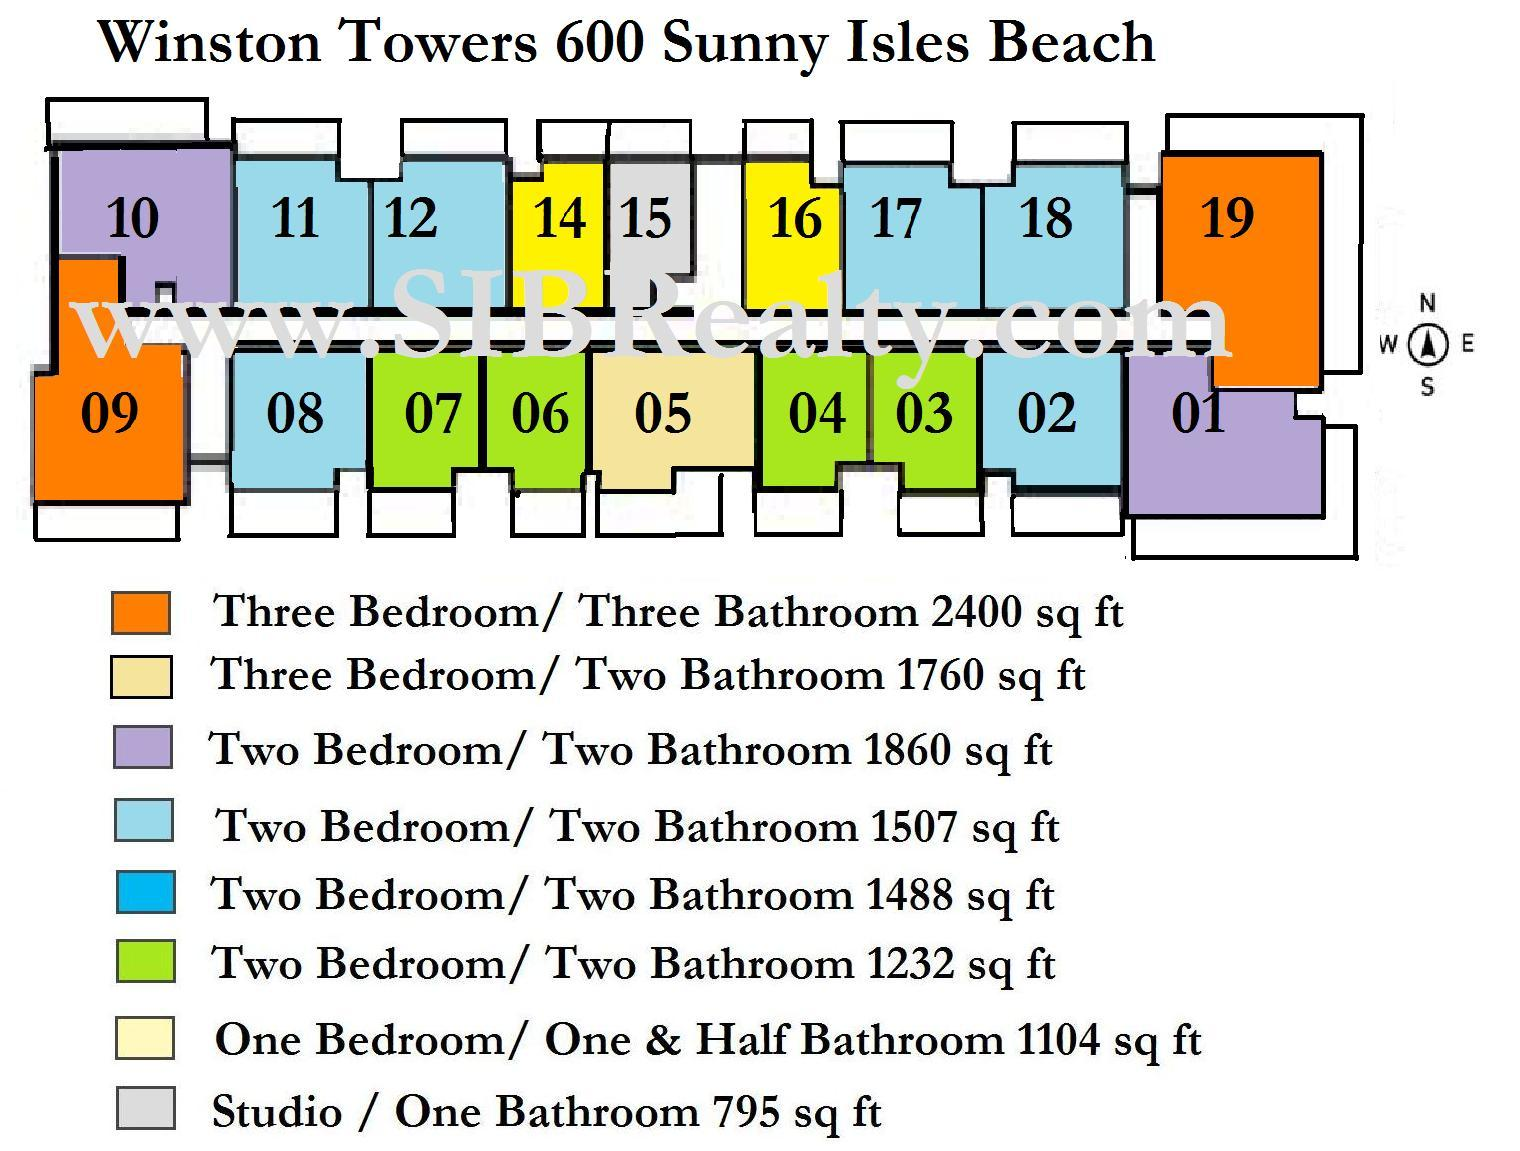 Winston Towers 600 Sunny Isles Beach Site Plan